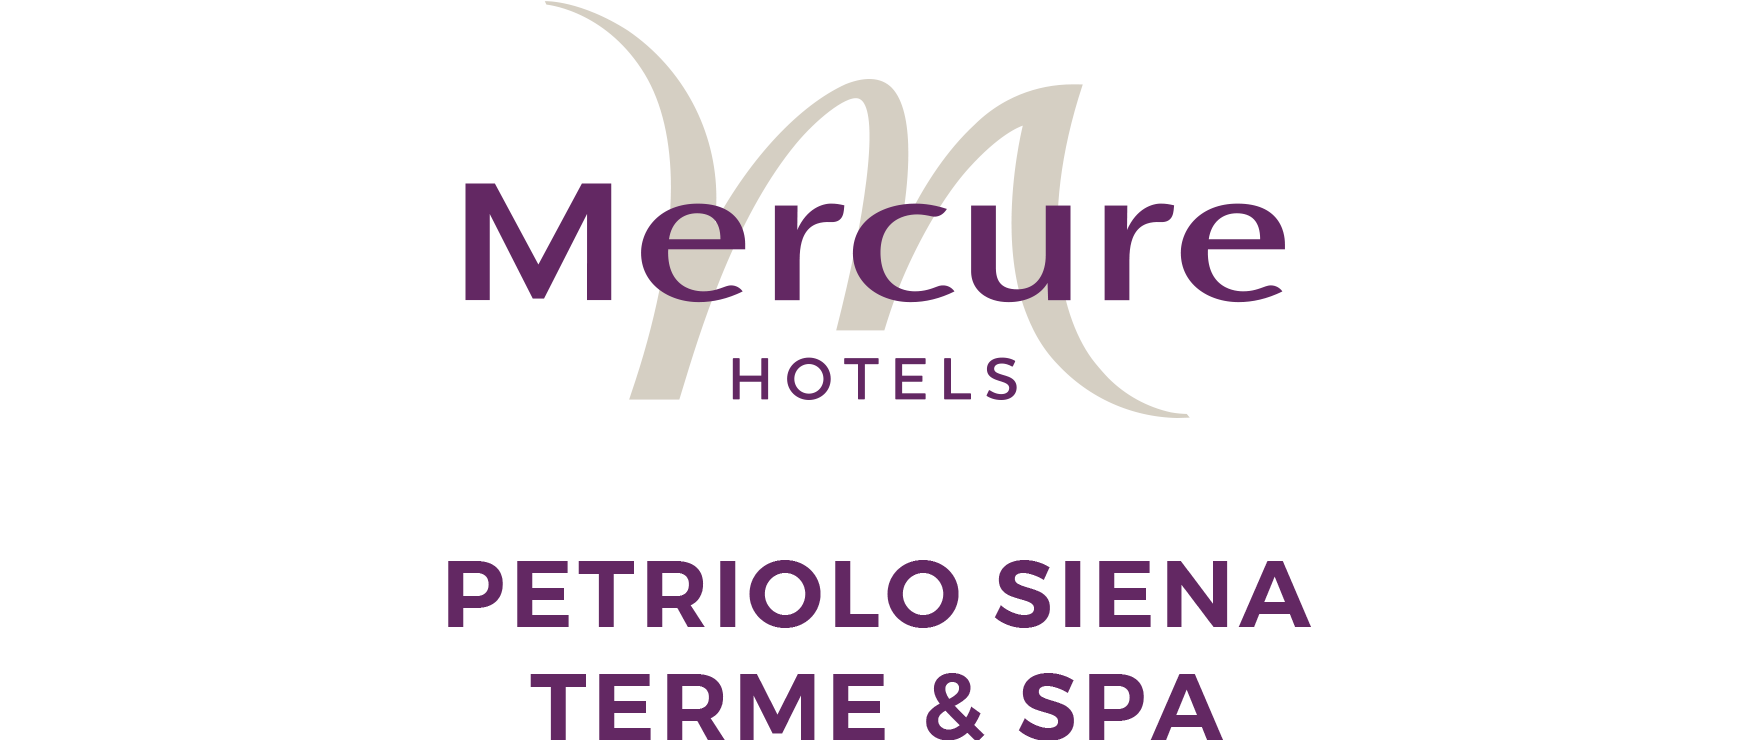 Mercure Petriolo Siena Terme Spa